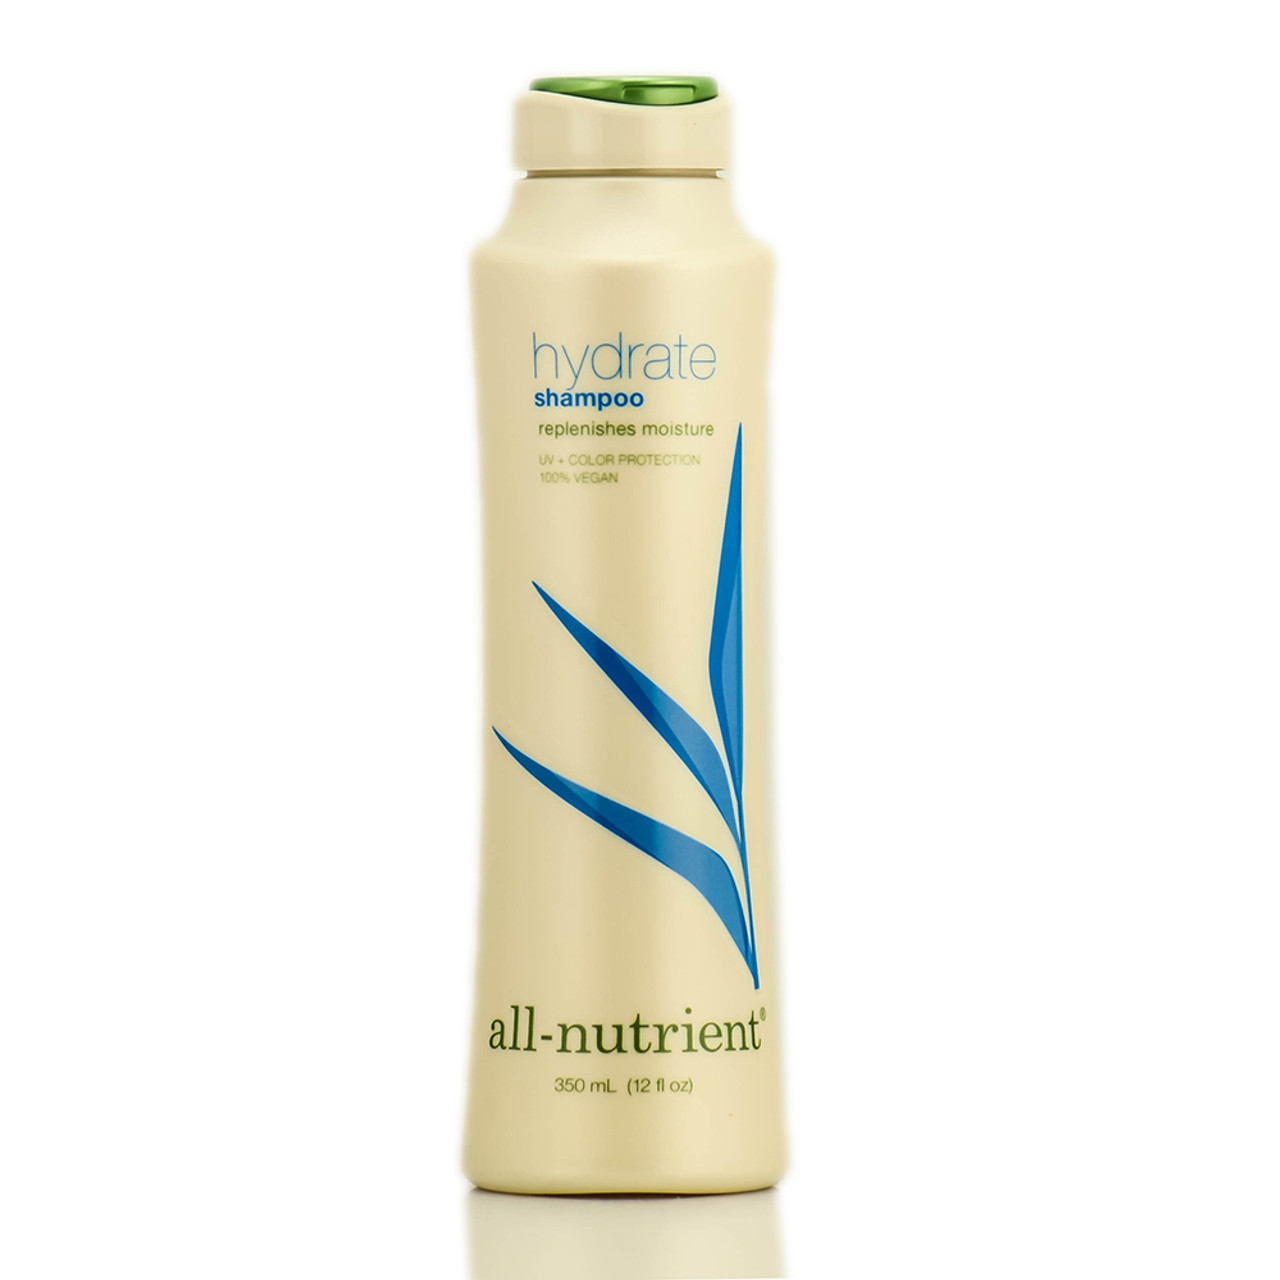 All Nutrient Hydrate Replenish Moisture And Shine Shampoo